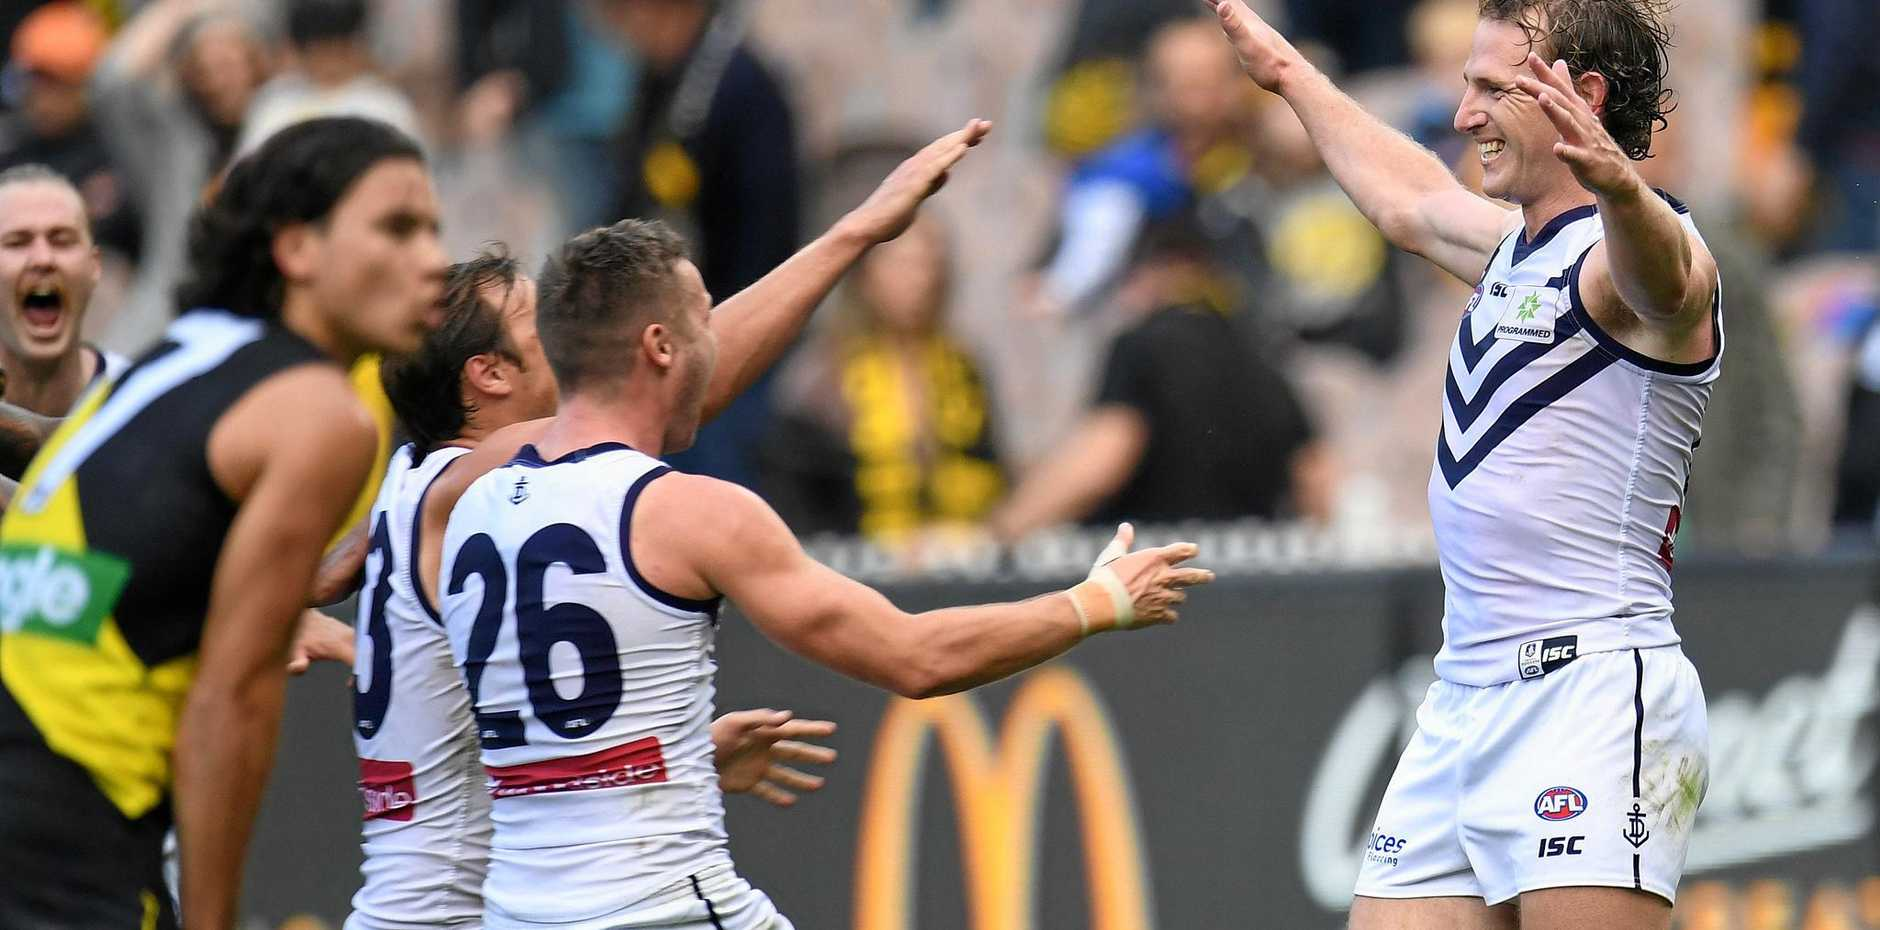 David Mundy (right) celebrates kicking the winning goal after the siren against Richmond.